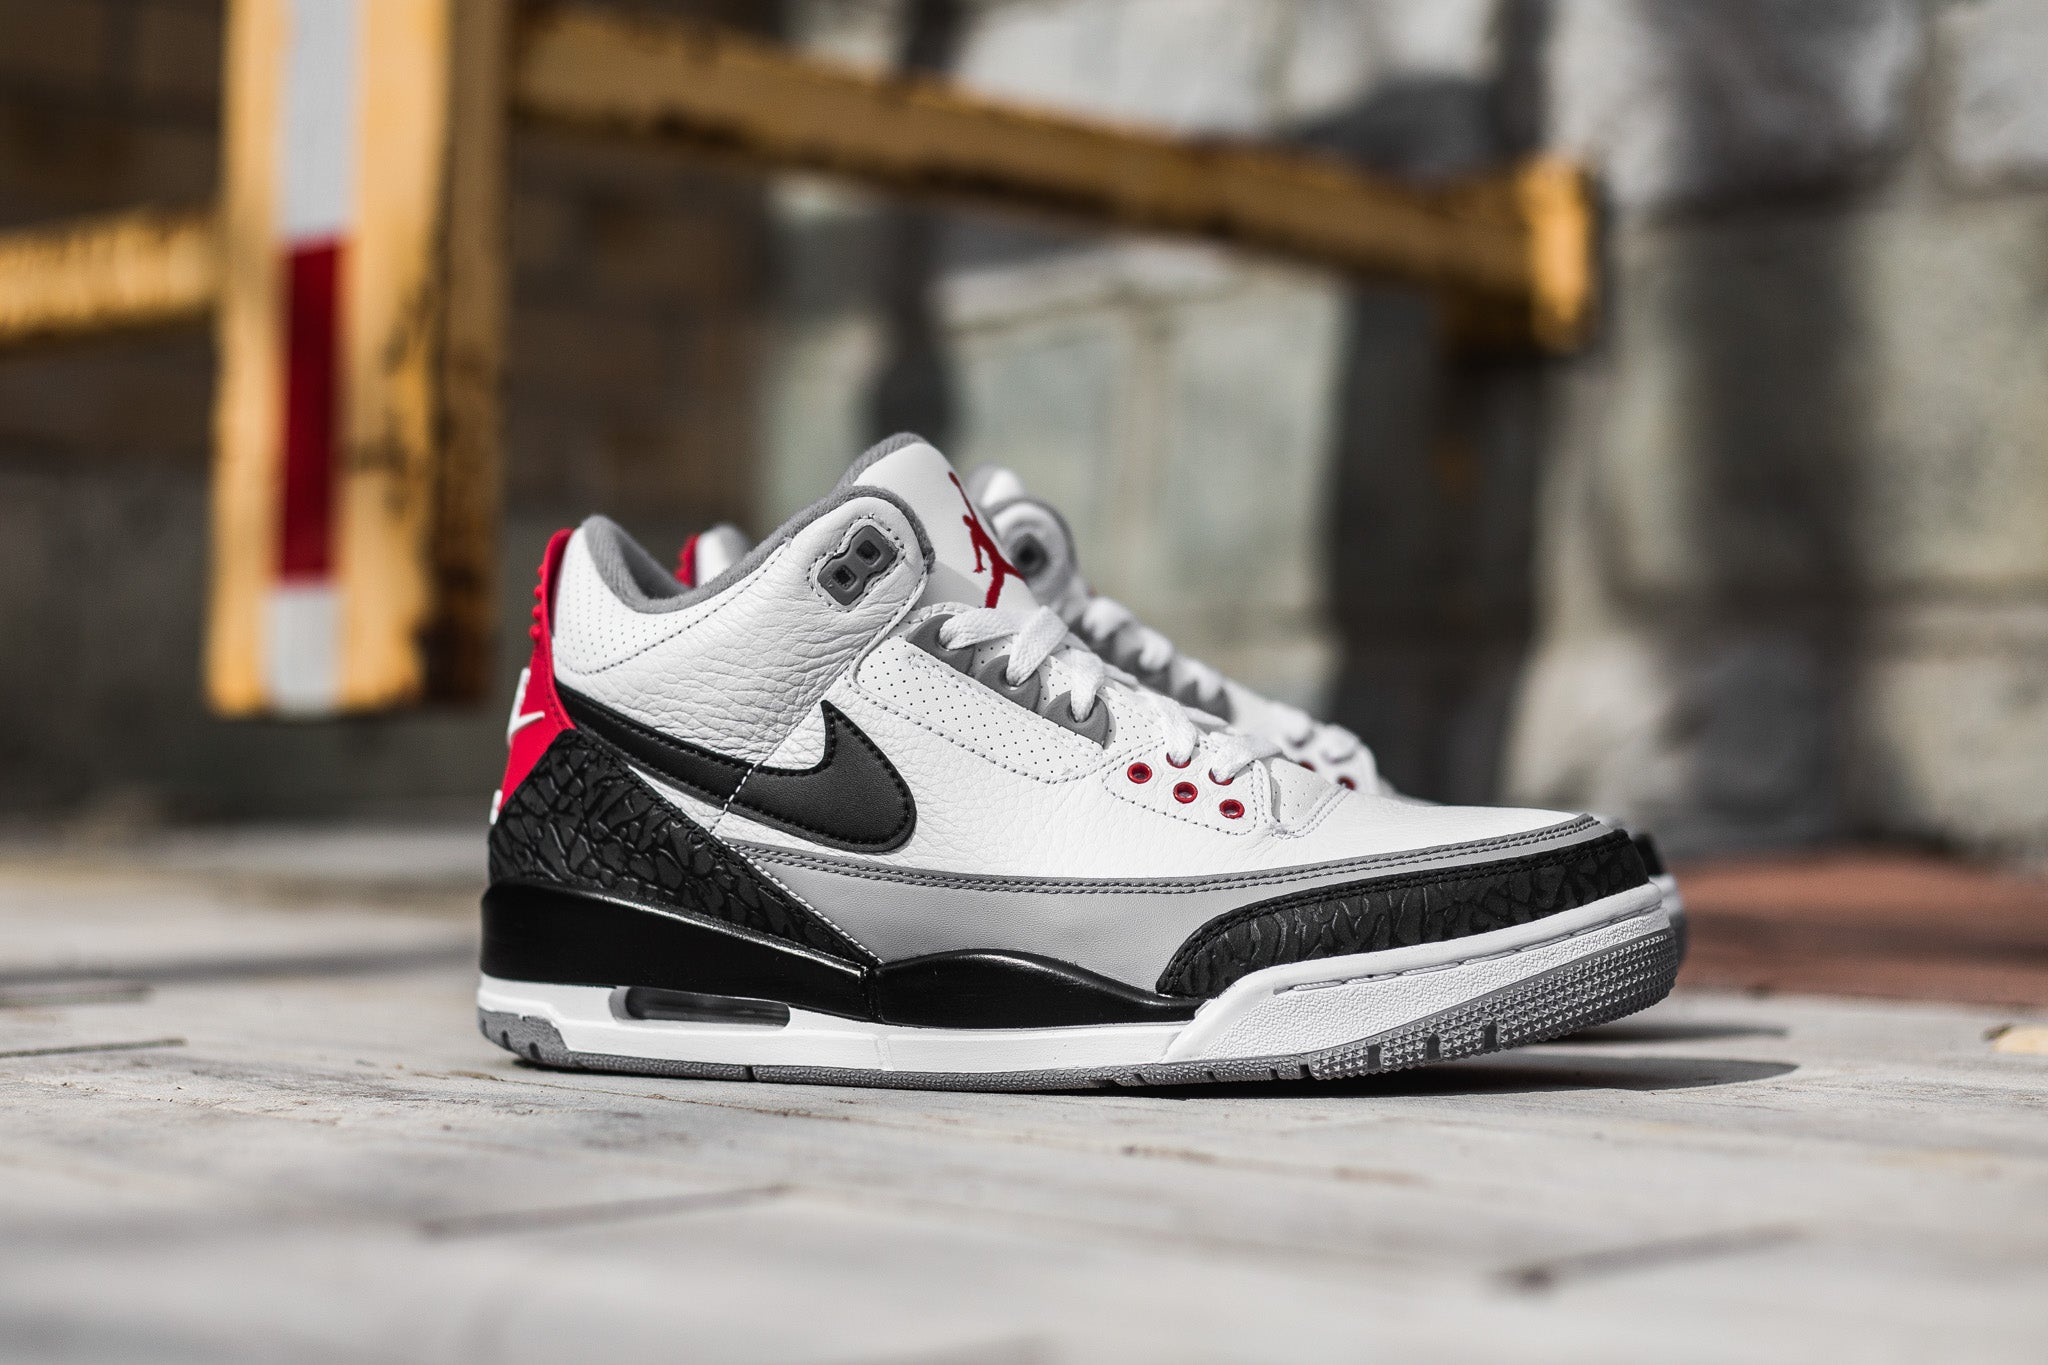 best service 574c8 c7bc2 To celebrate the birthday of Tinker Hatfield, Air Jordan has dropped a very  special delivery of Air Jordan 3 Retro